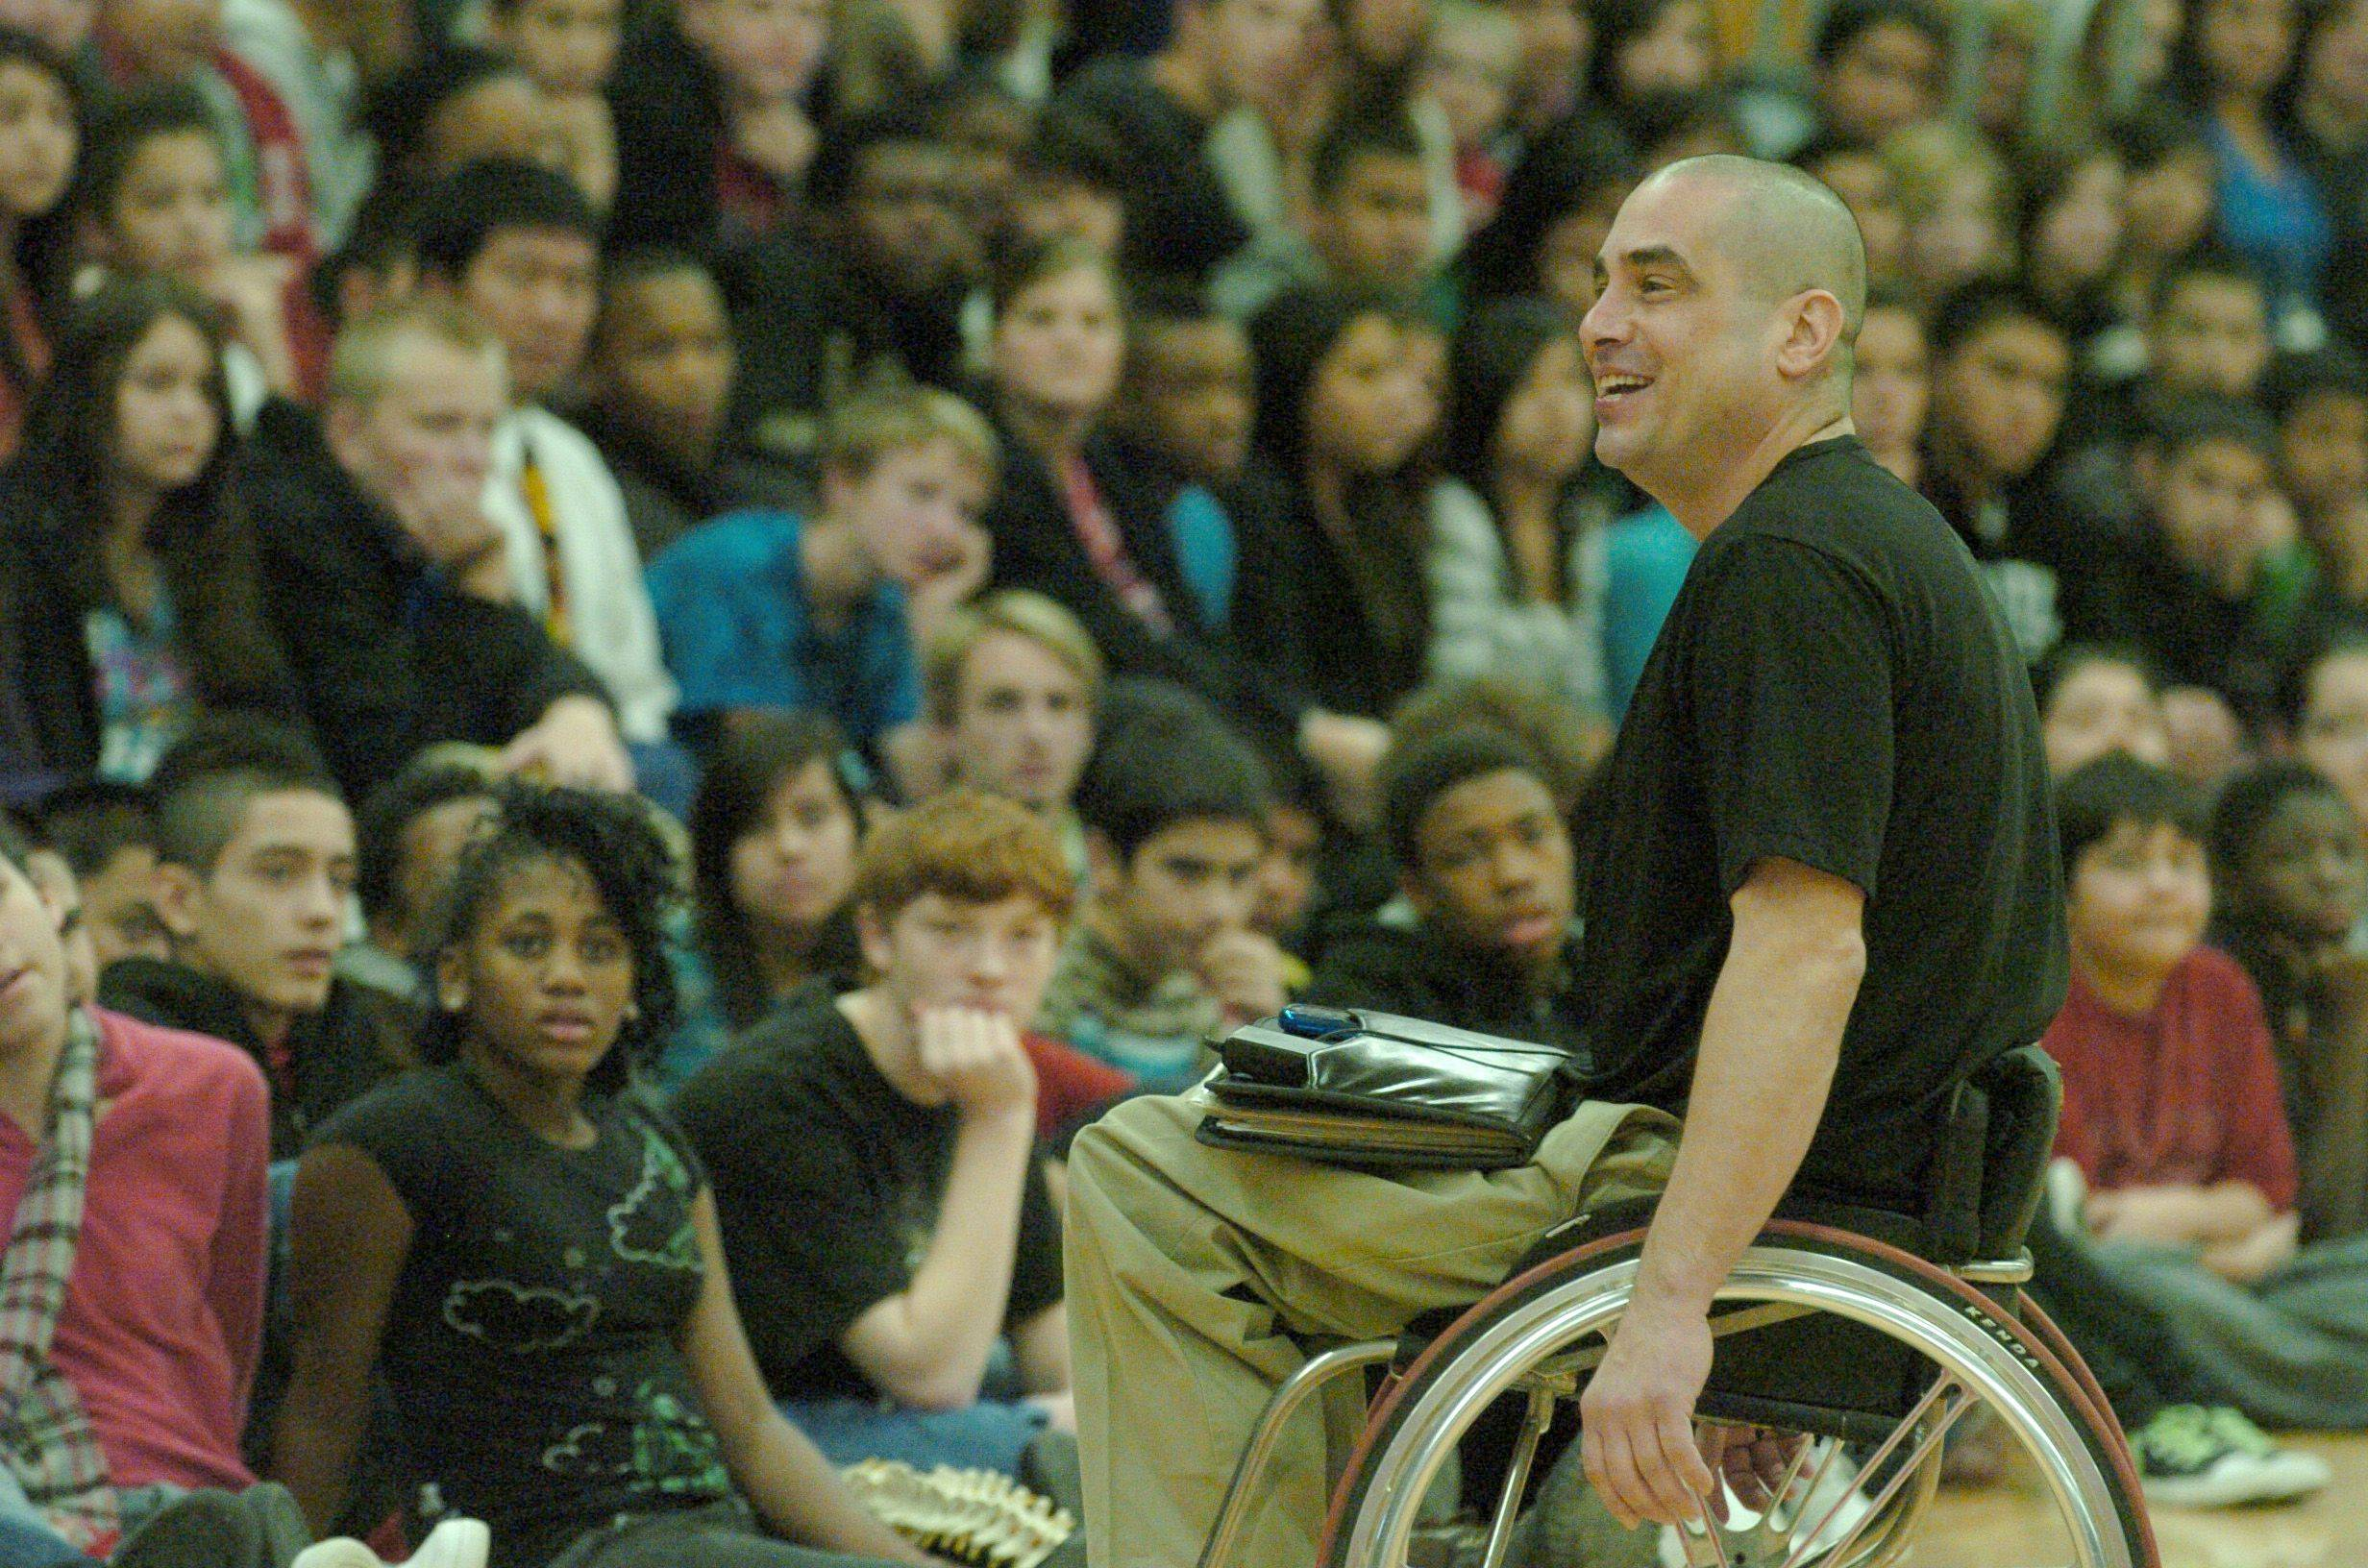 Former gang member James Lilly speaks to the students at Carpentersville Middle School Thursday afternoon about turning his life around. Lilly became paralyzed from the waist down after a gang shooting.